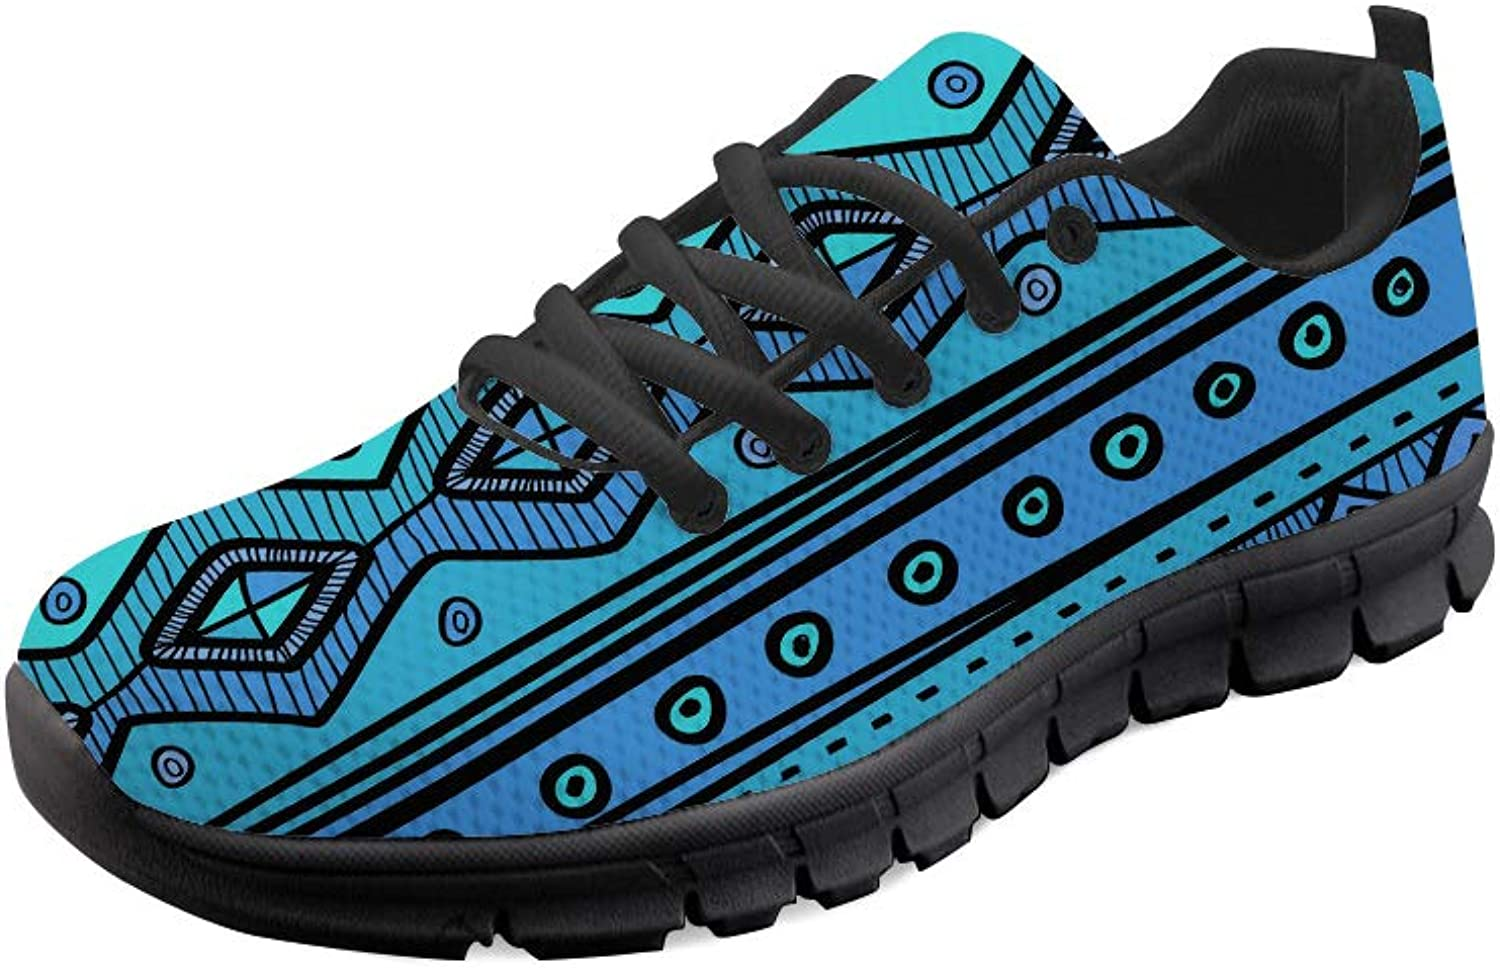 Chaqlin Flat Trail Sport shoes Flat Running Jogging Sneakers bluee Size 35